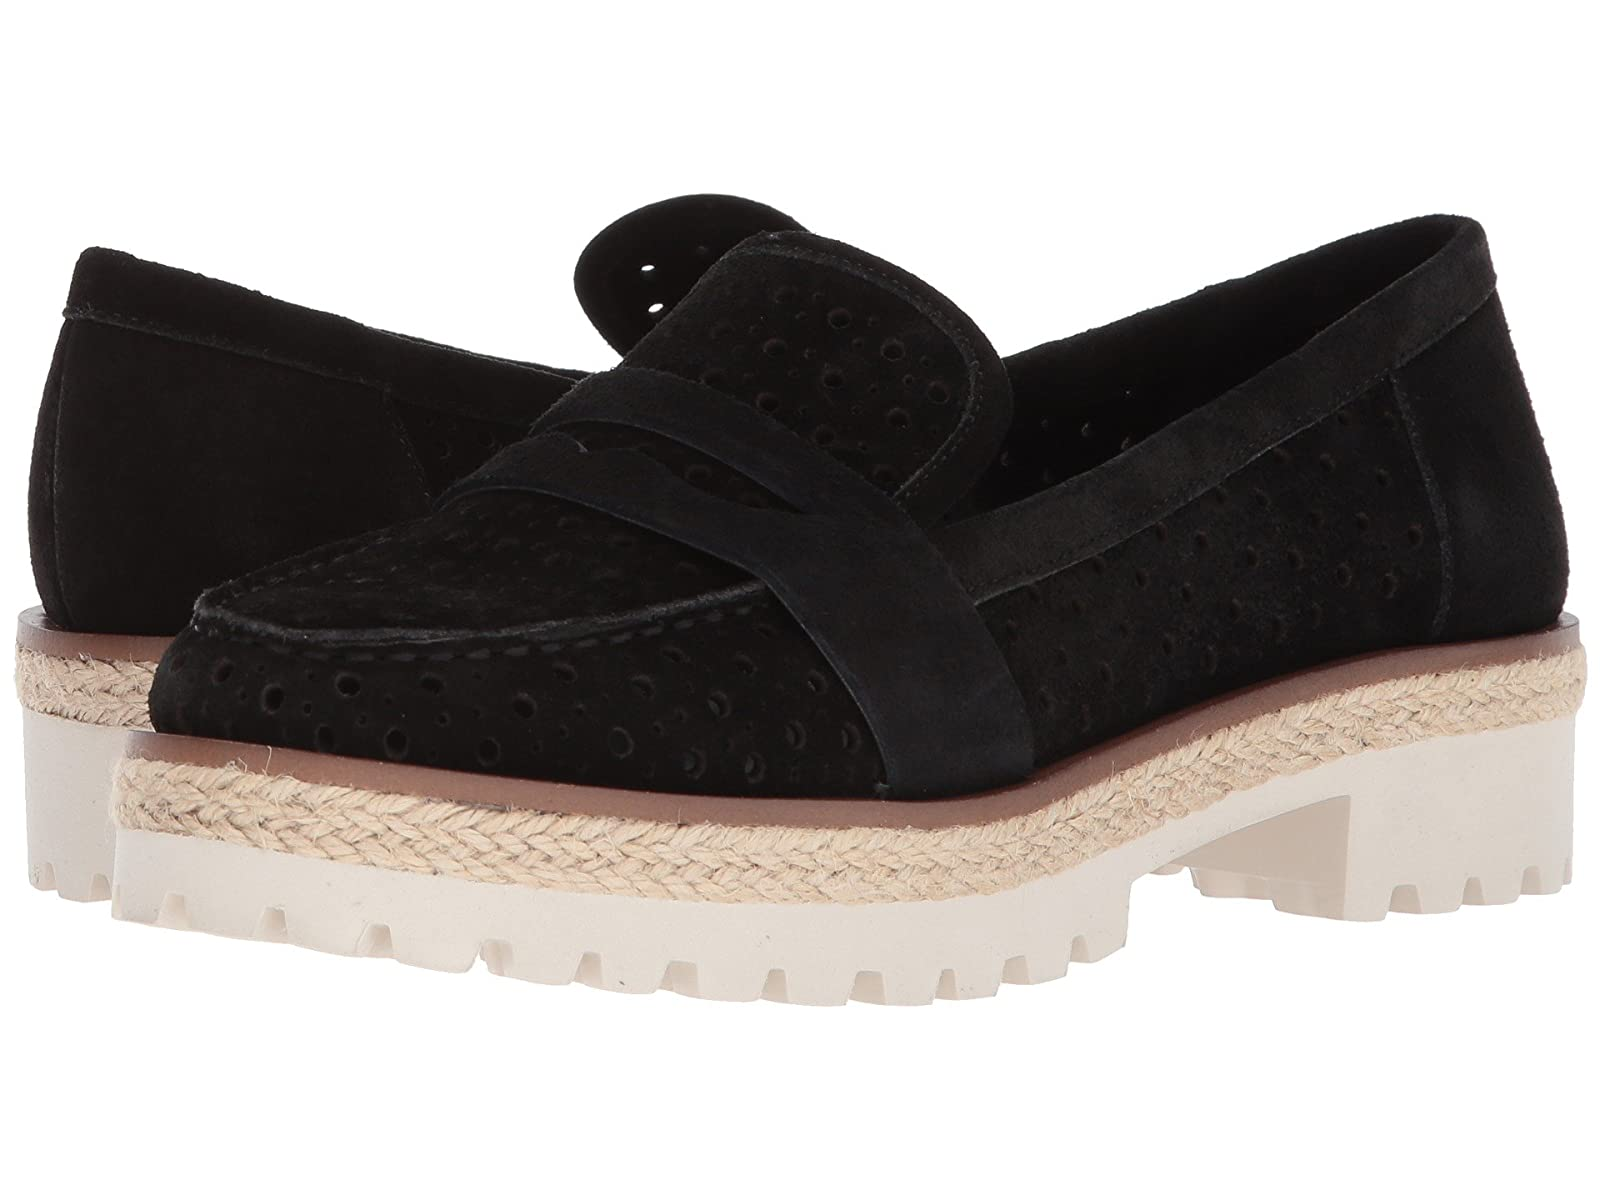 Nine West Gradskool LoaferCheap and distinctive eye-catching shoes